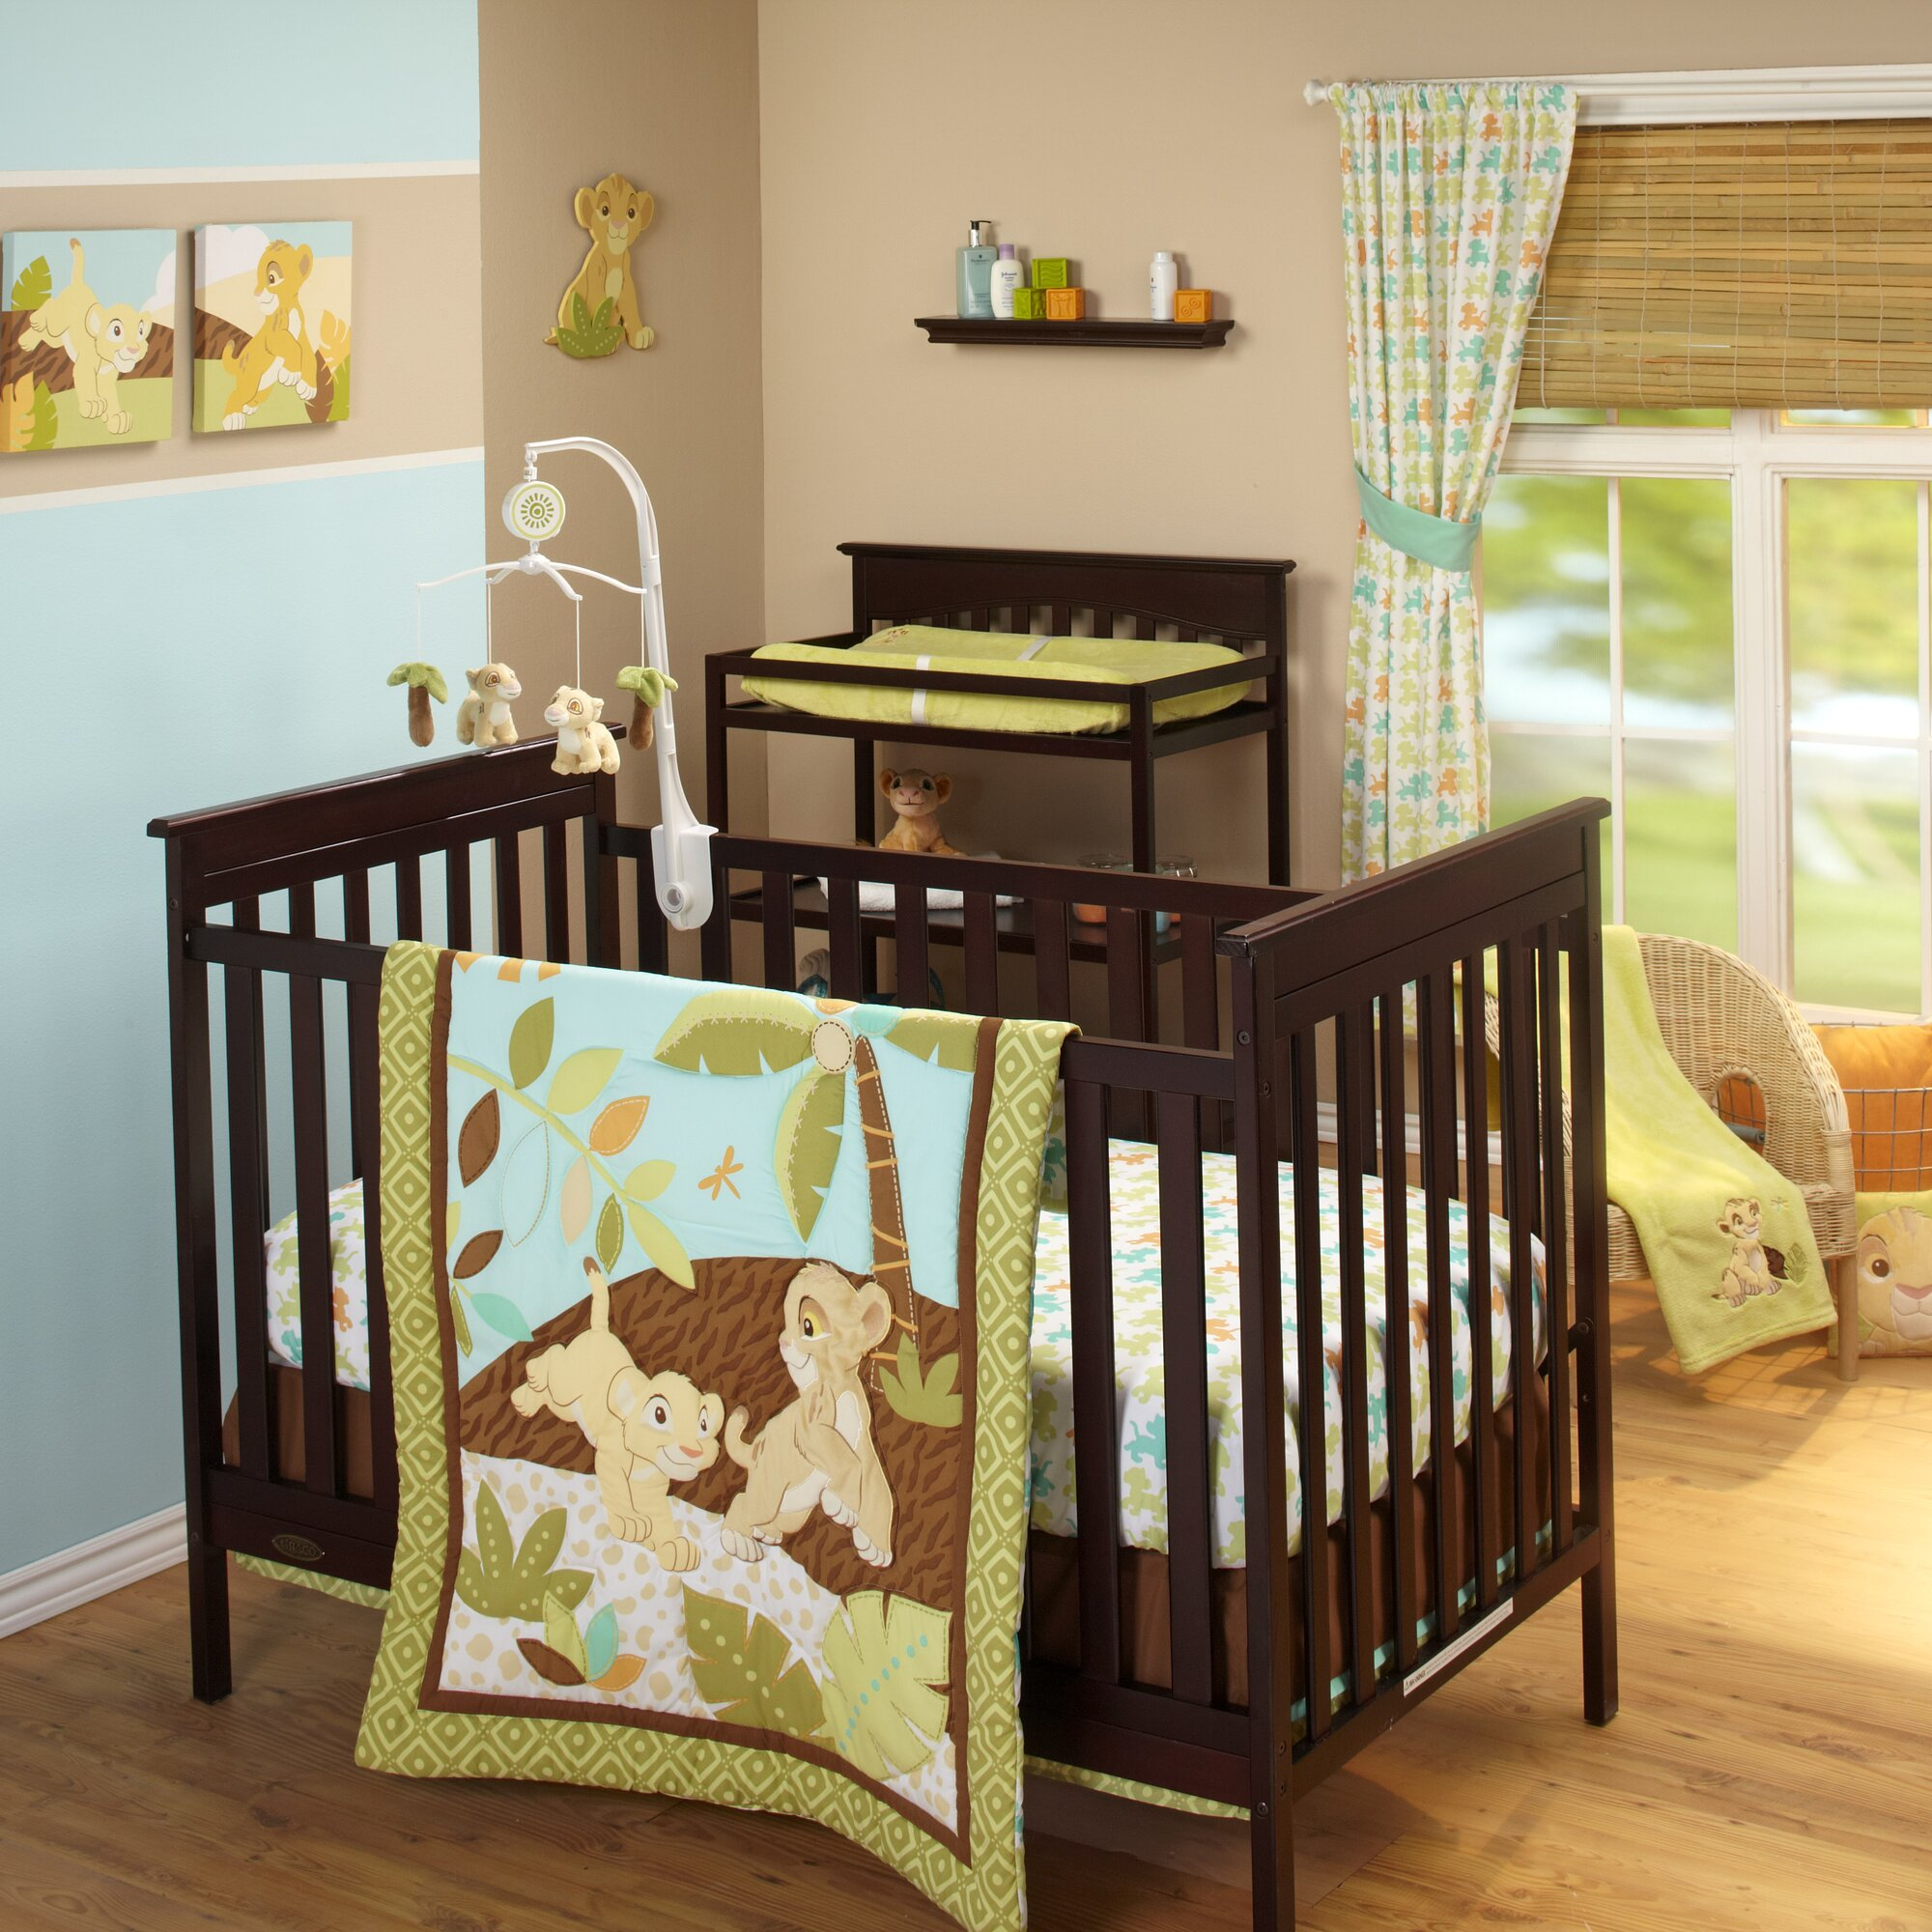 Lion King Infant Bedding